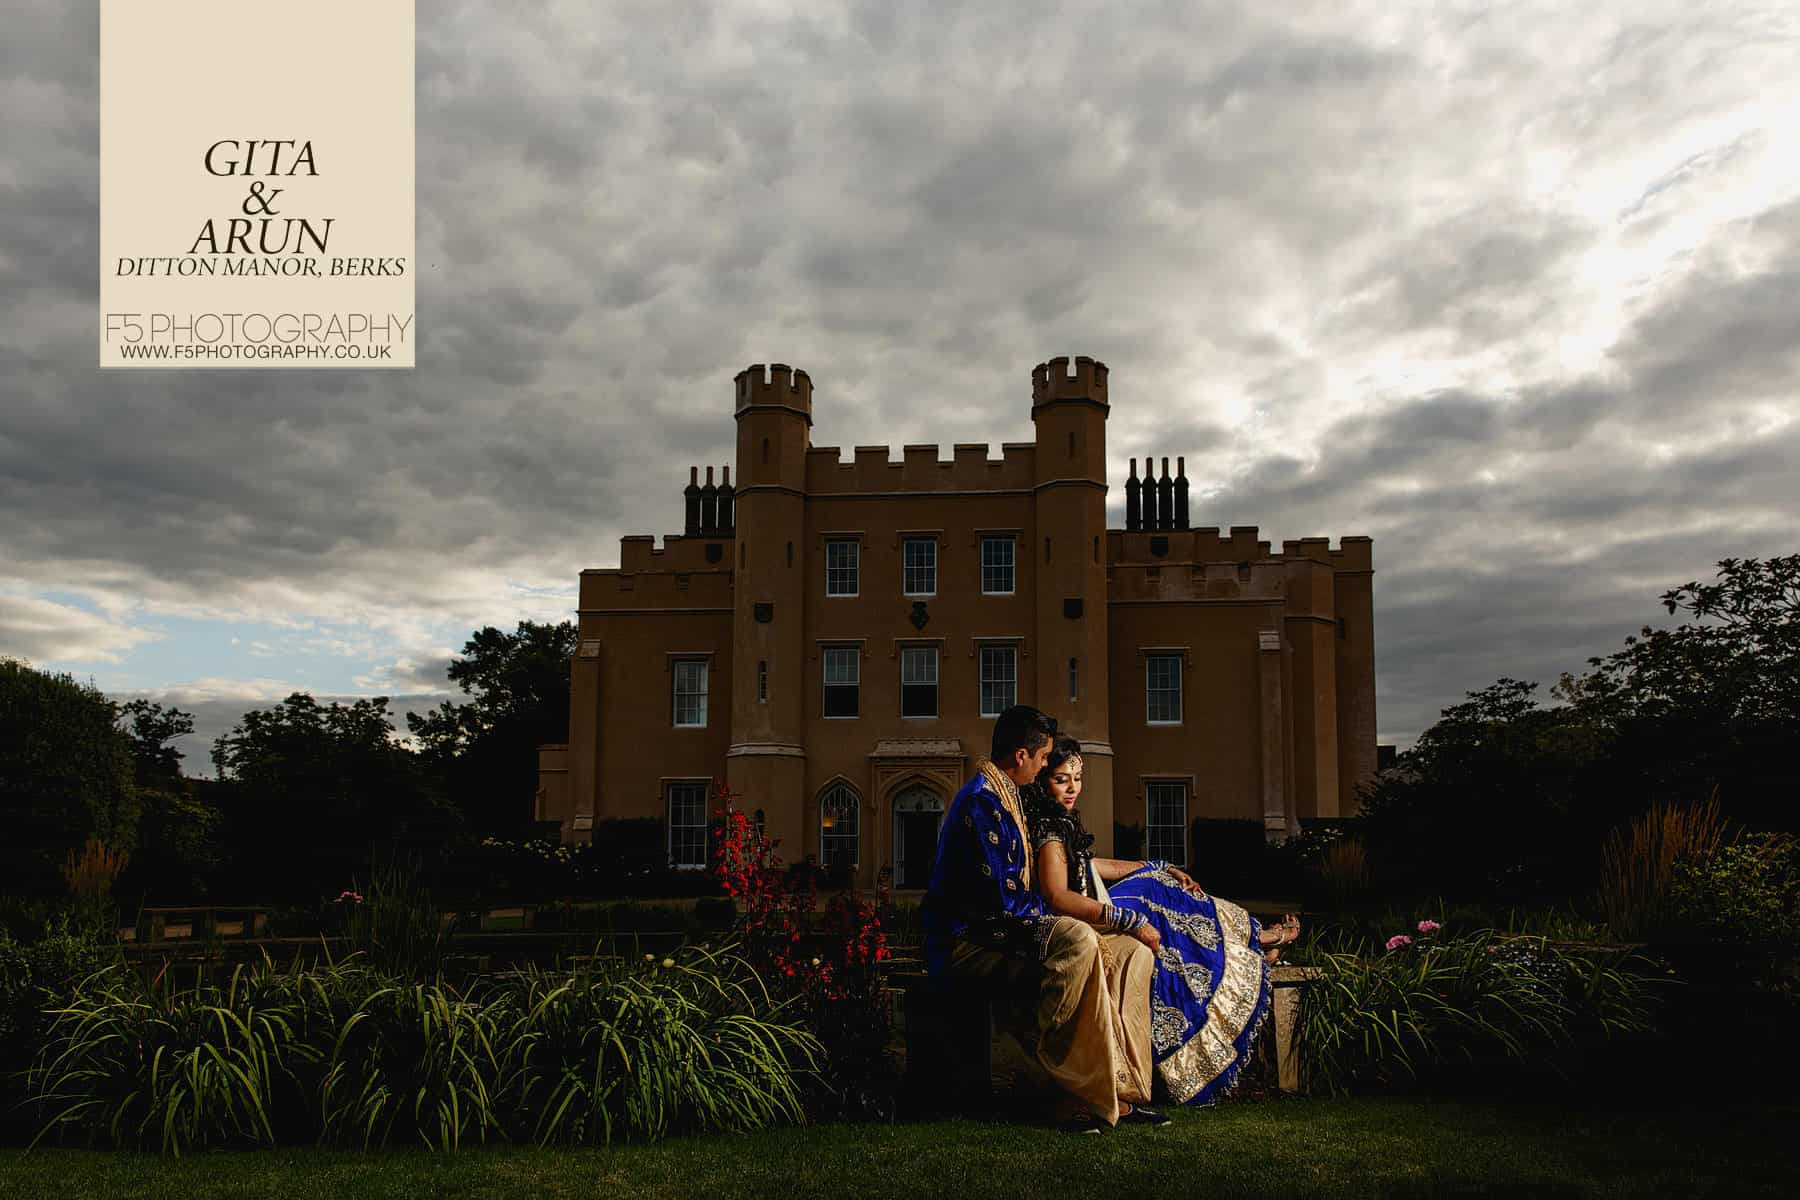 ditton manor asian wedding